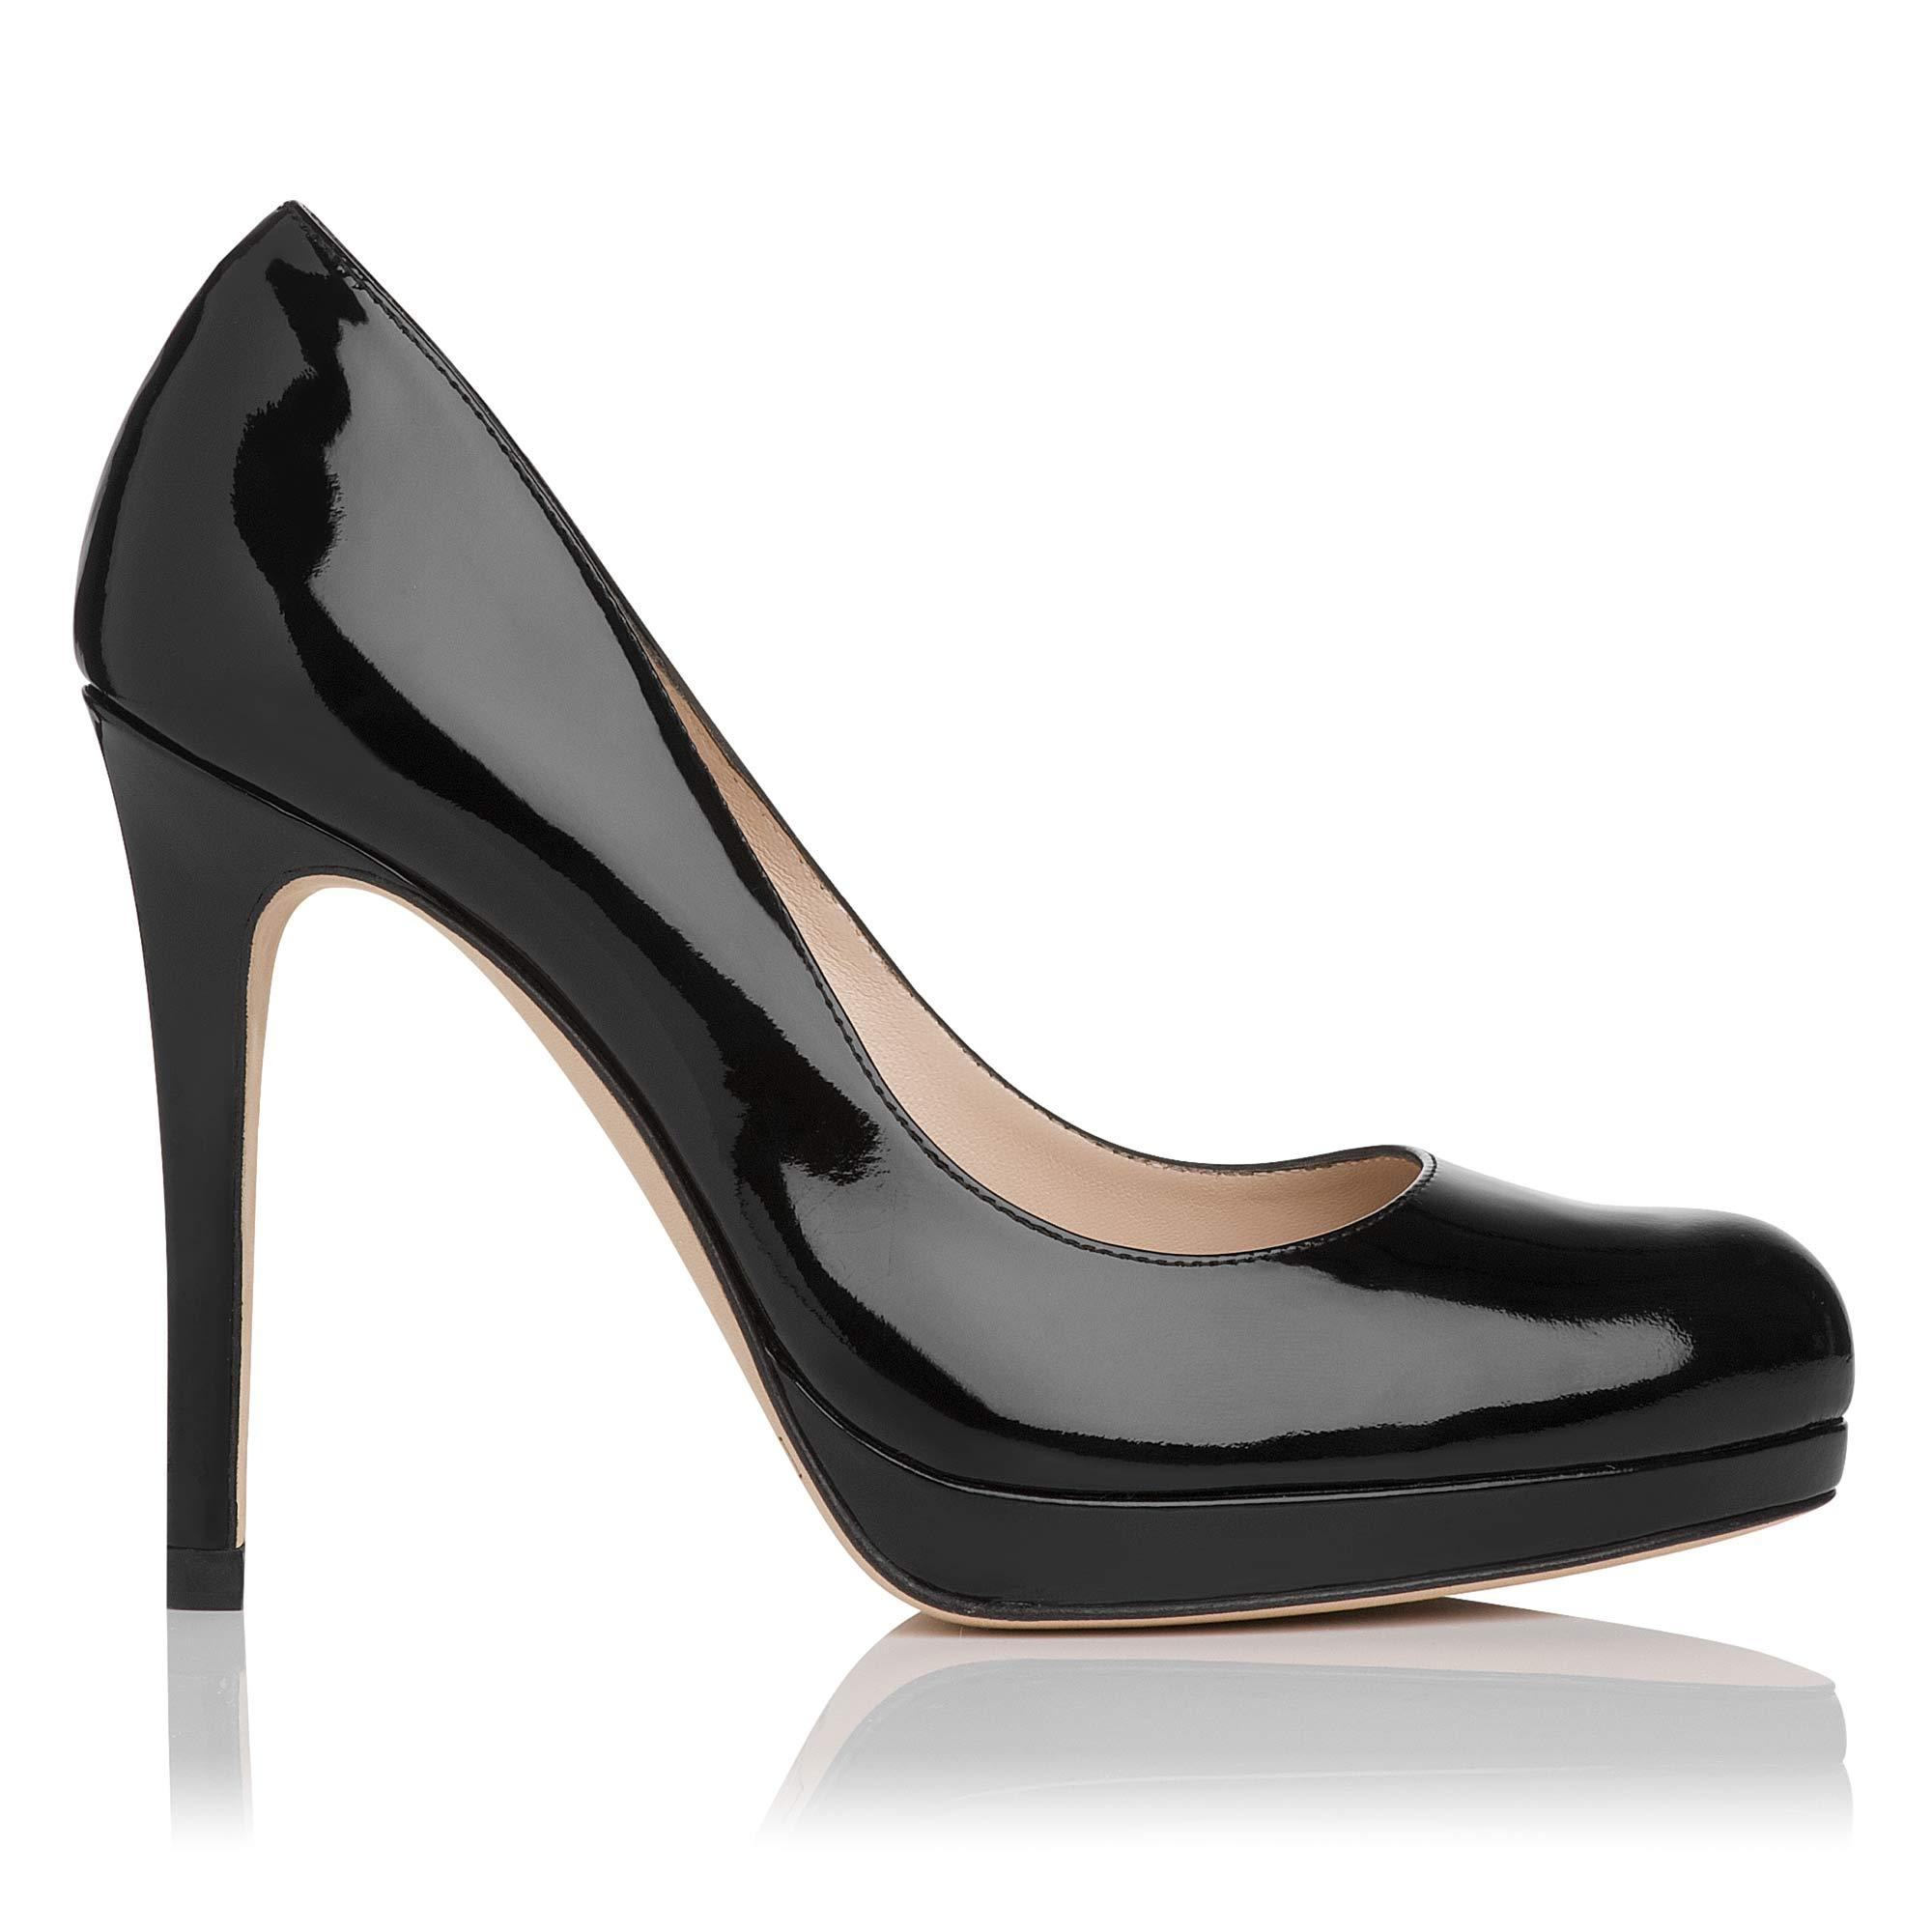 73011c7eefb Sledge Patent Leather Black Heel